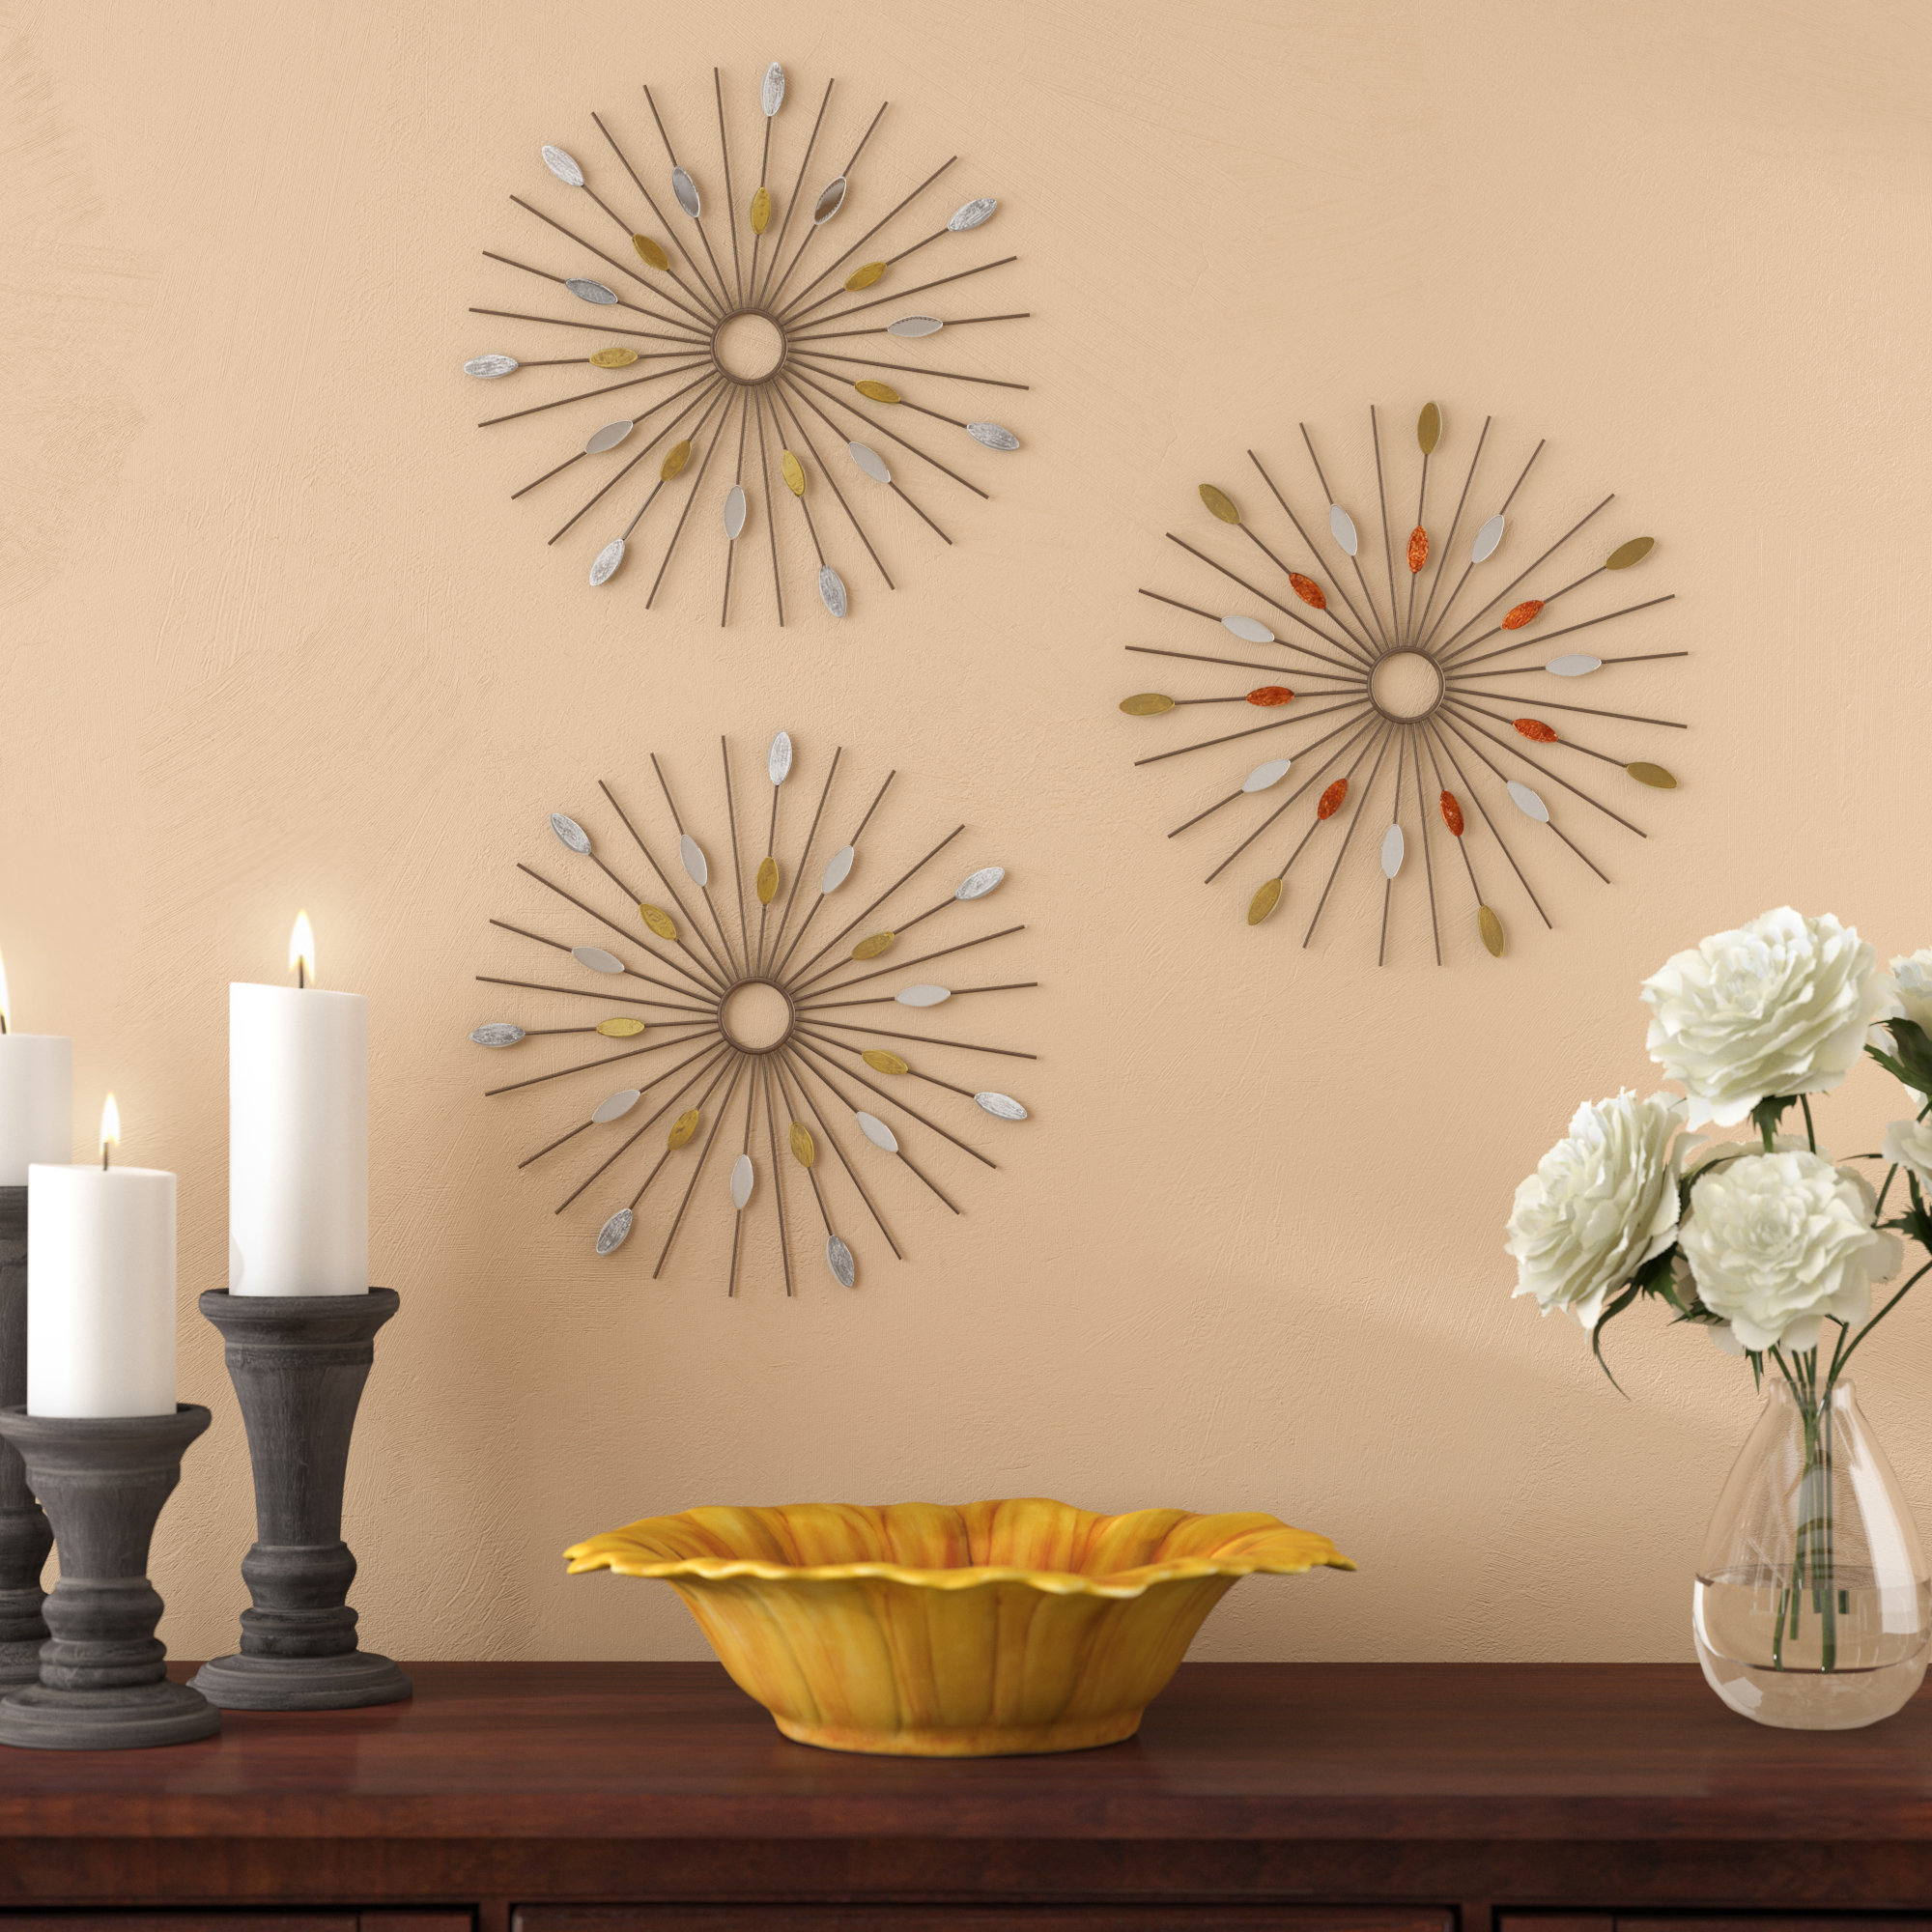 3 Piece Wall Décor Set Throughout 4 Piece Metal Wall Decor Sets (View 9 of 30)